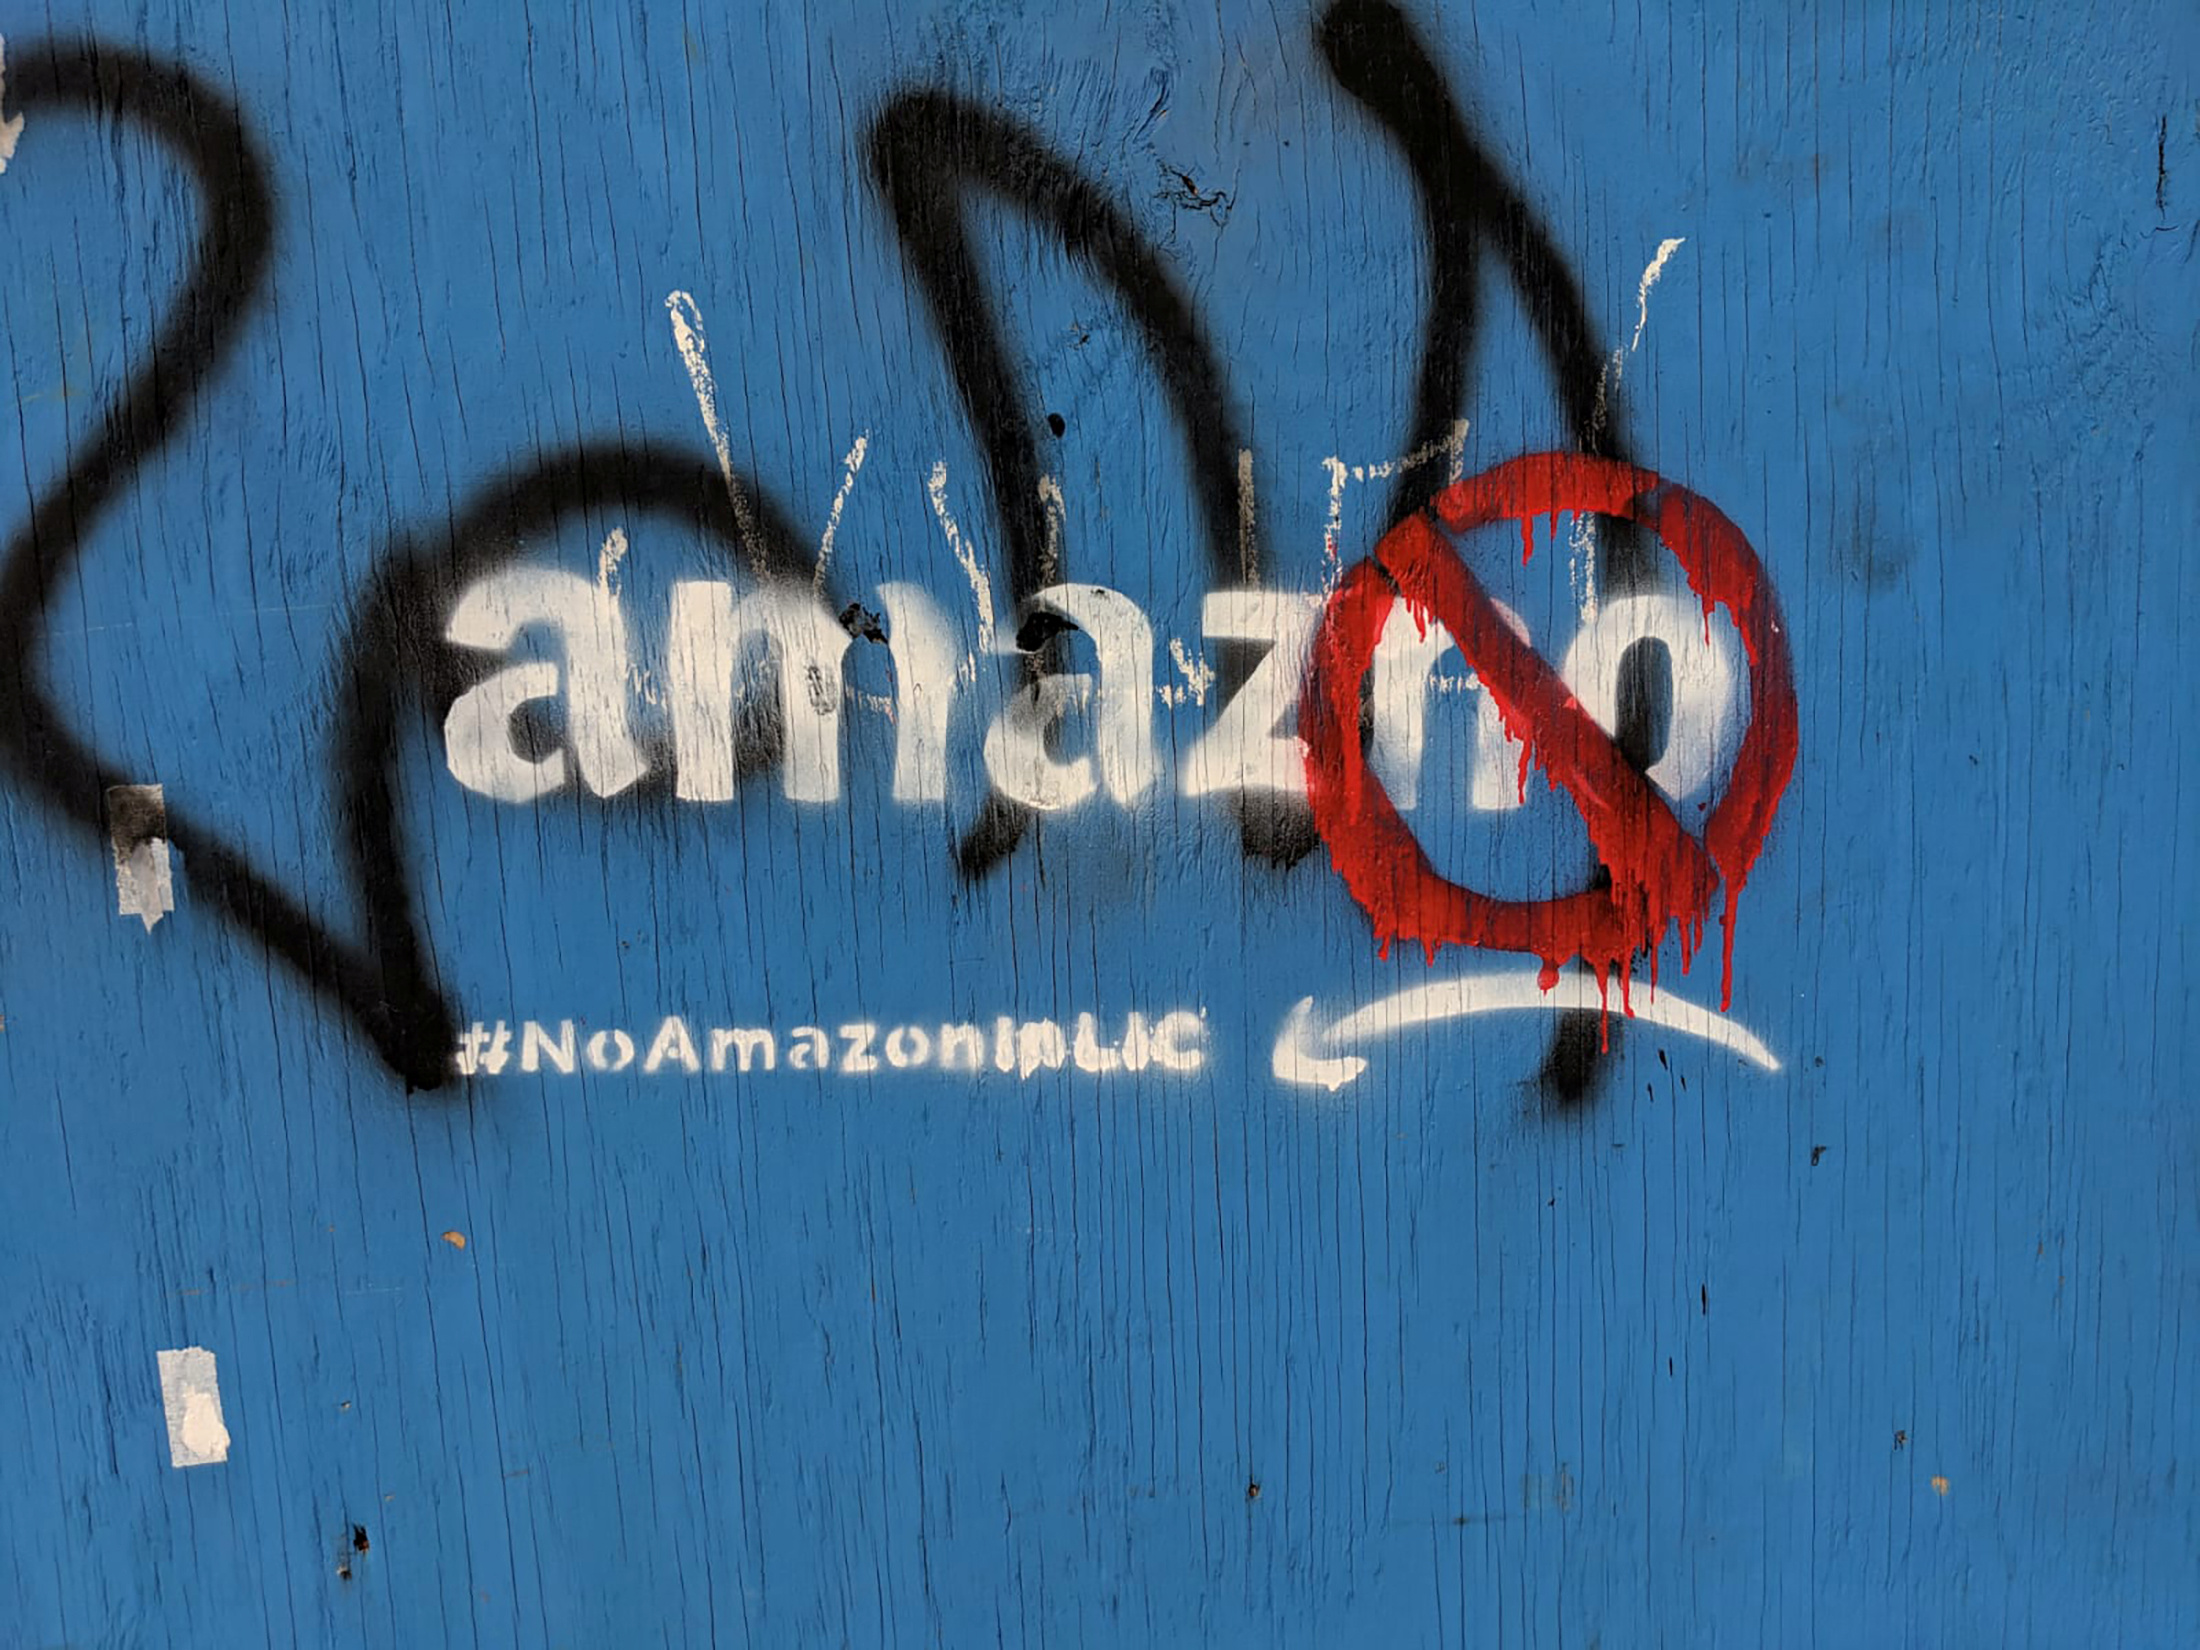 Amazon, NYC shoot selves and each other in foot – Breakingviews